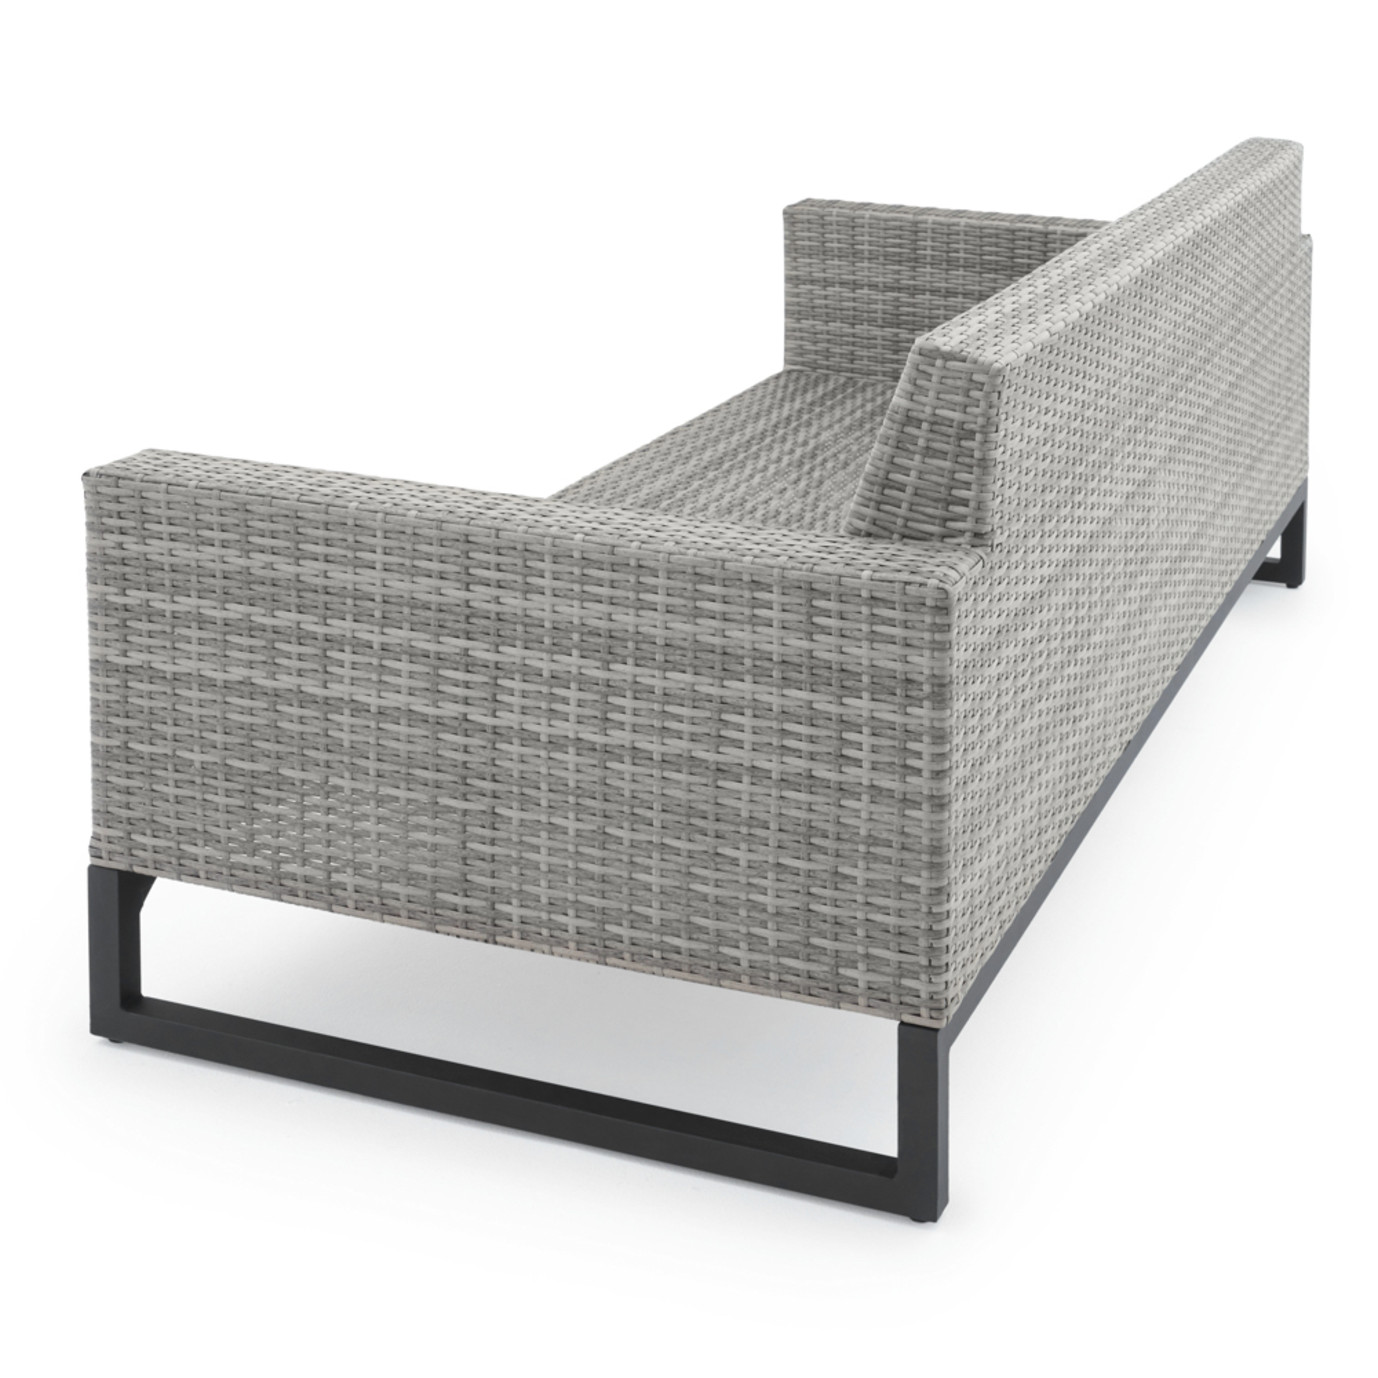 Milo™ Gray 78in Sofa - Charcoal Gray